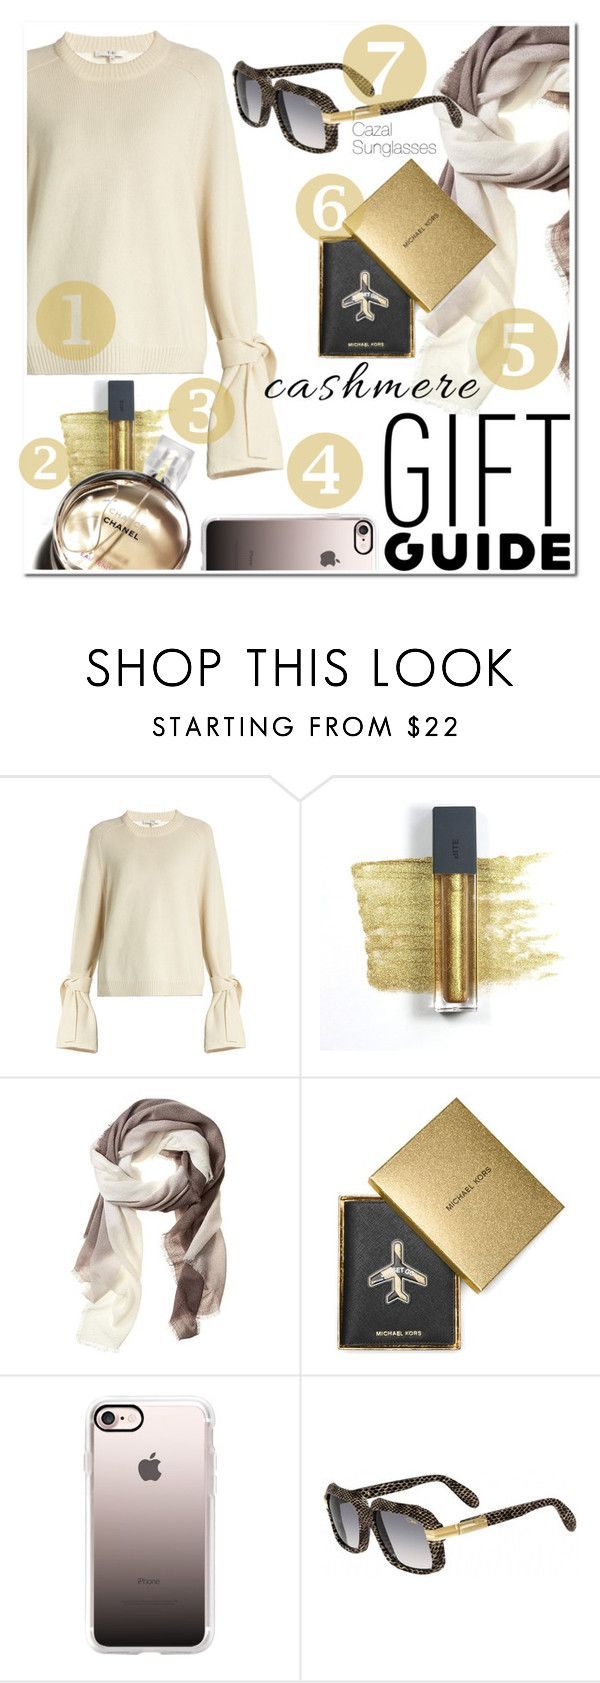 """""""Gift Guide: Besties"""" by smartbuyglasses-uk ❤ liked on Polyvore featuring TIBI, Bite, Banana Republic, Chanel, MICHAEL Michael Kors, Casetify, Cazal, giftguide, sunglasses and besties"""